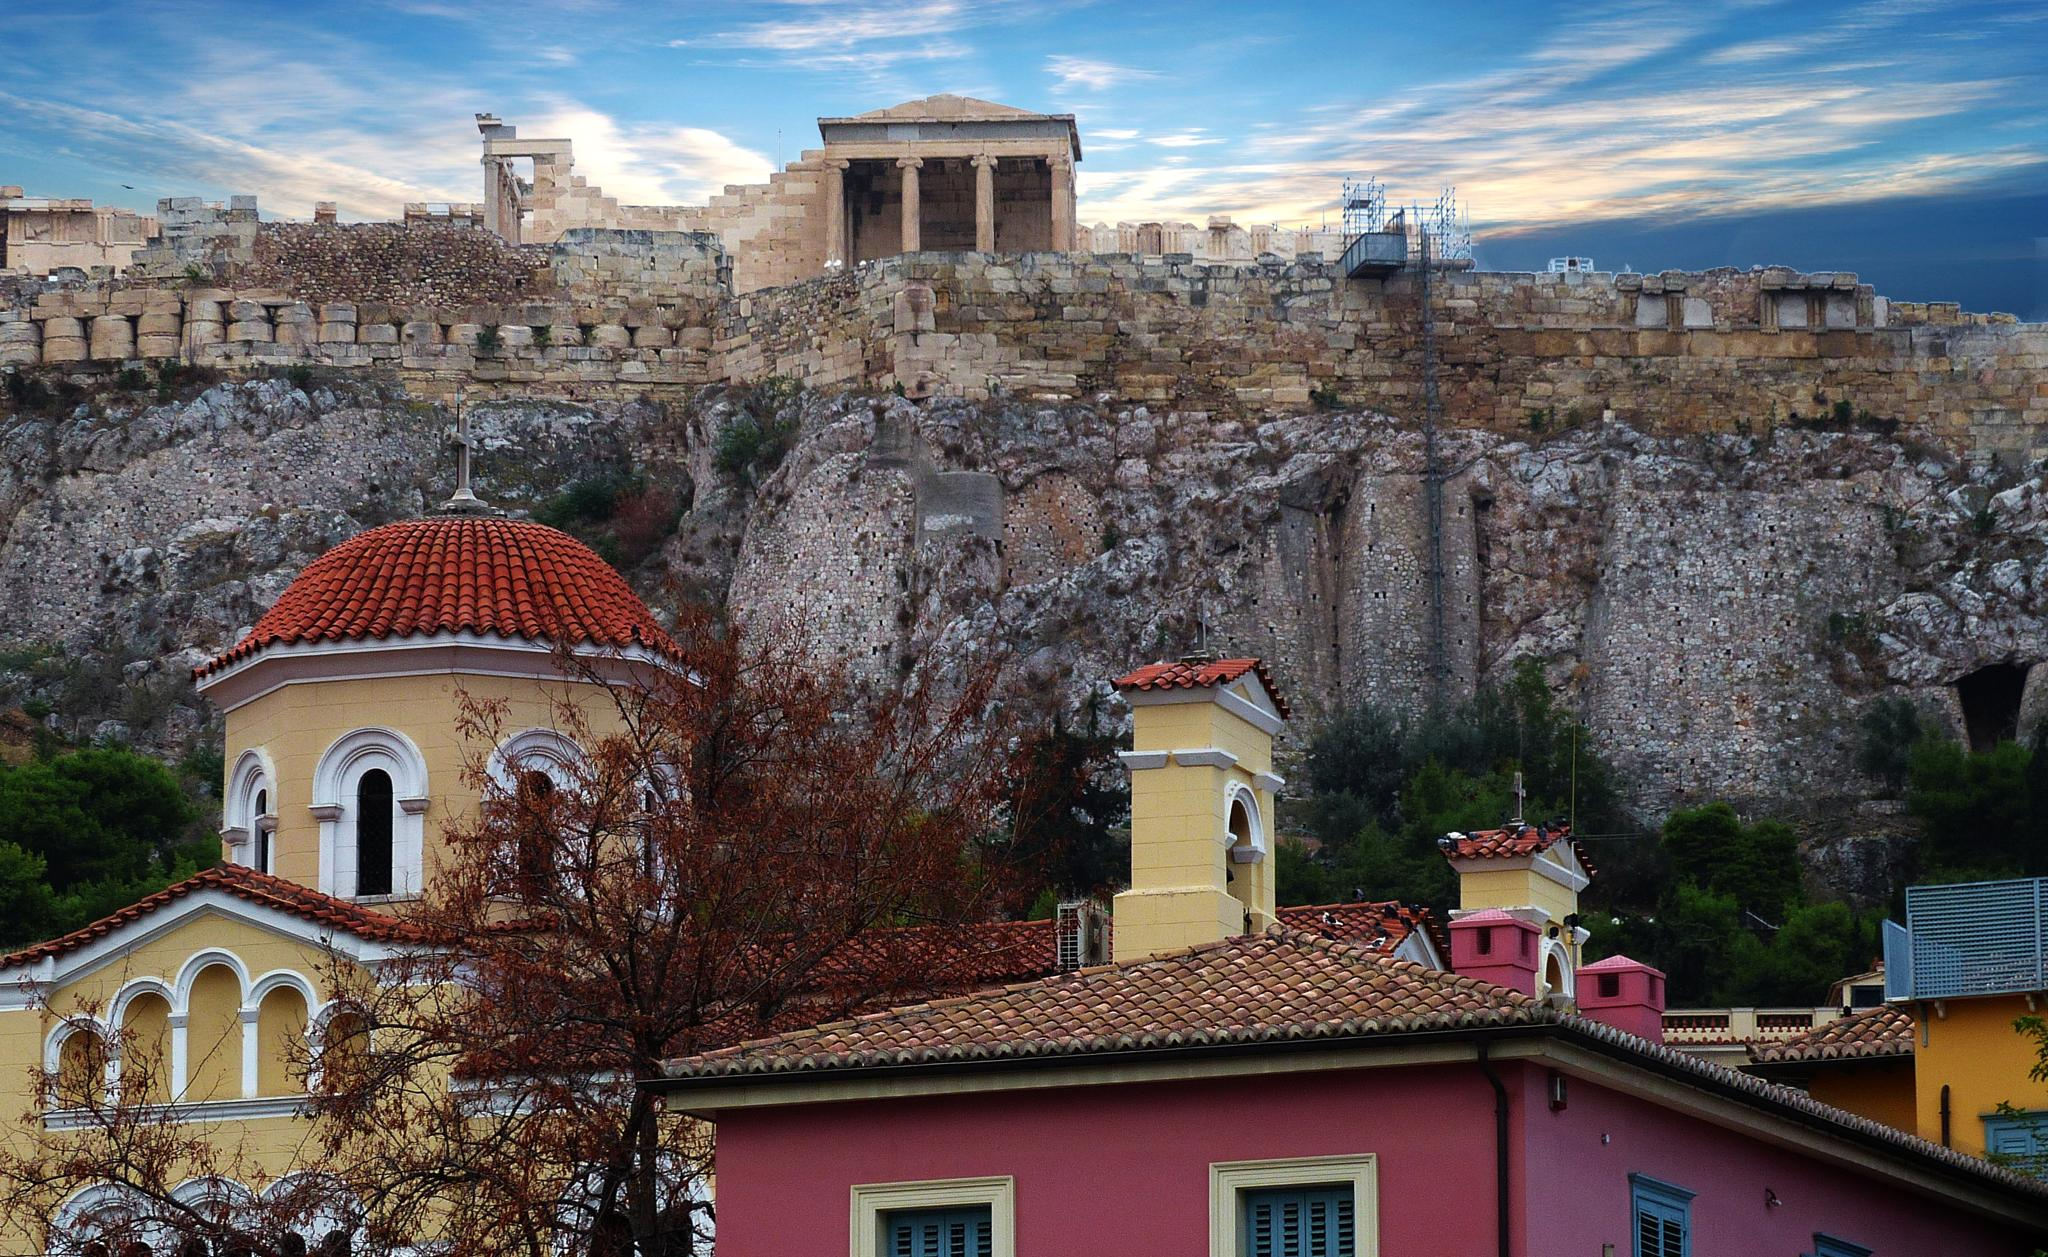 Athens City scene by Costa Philippou